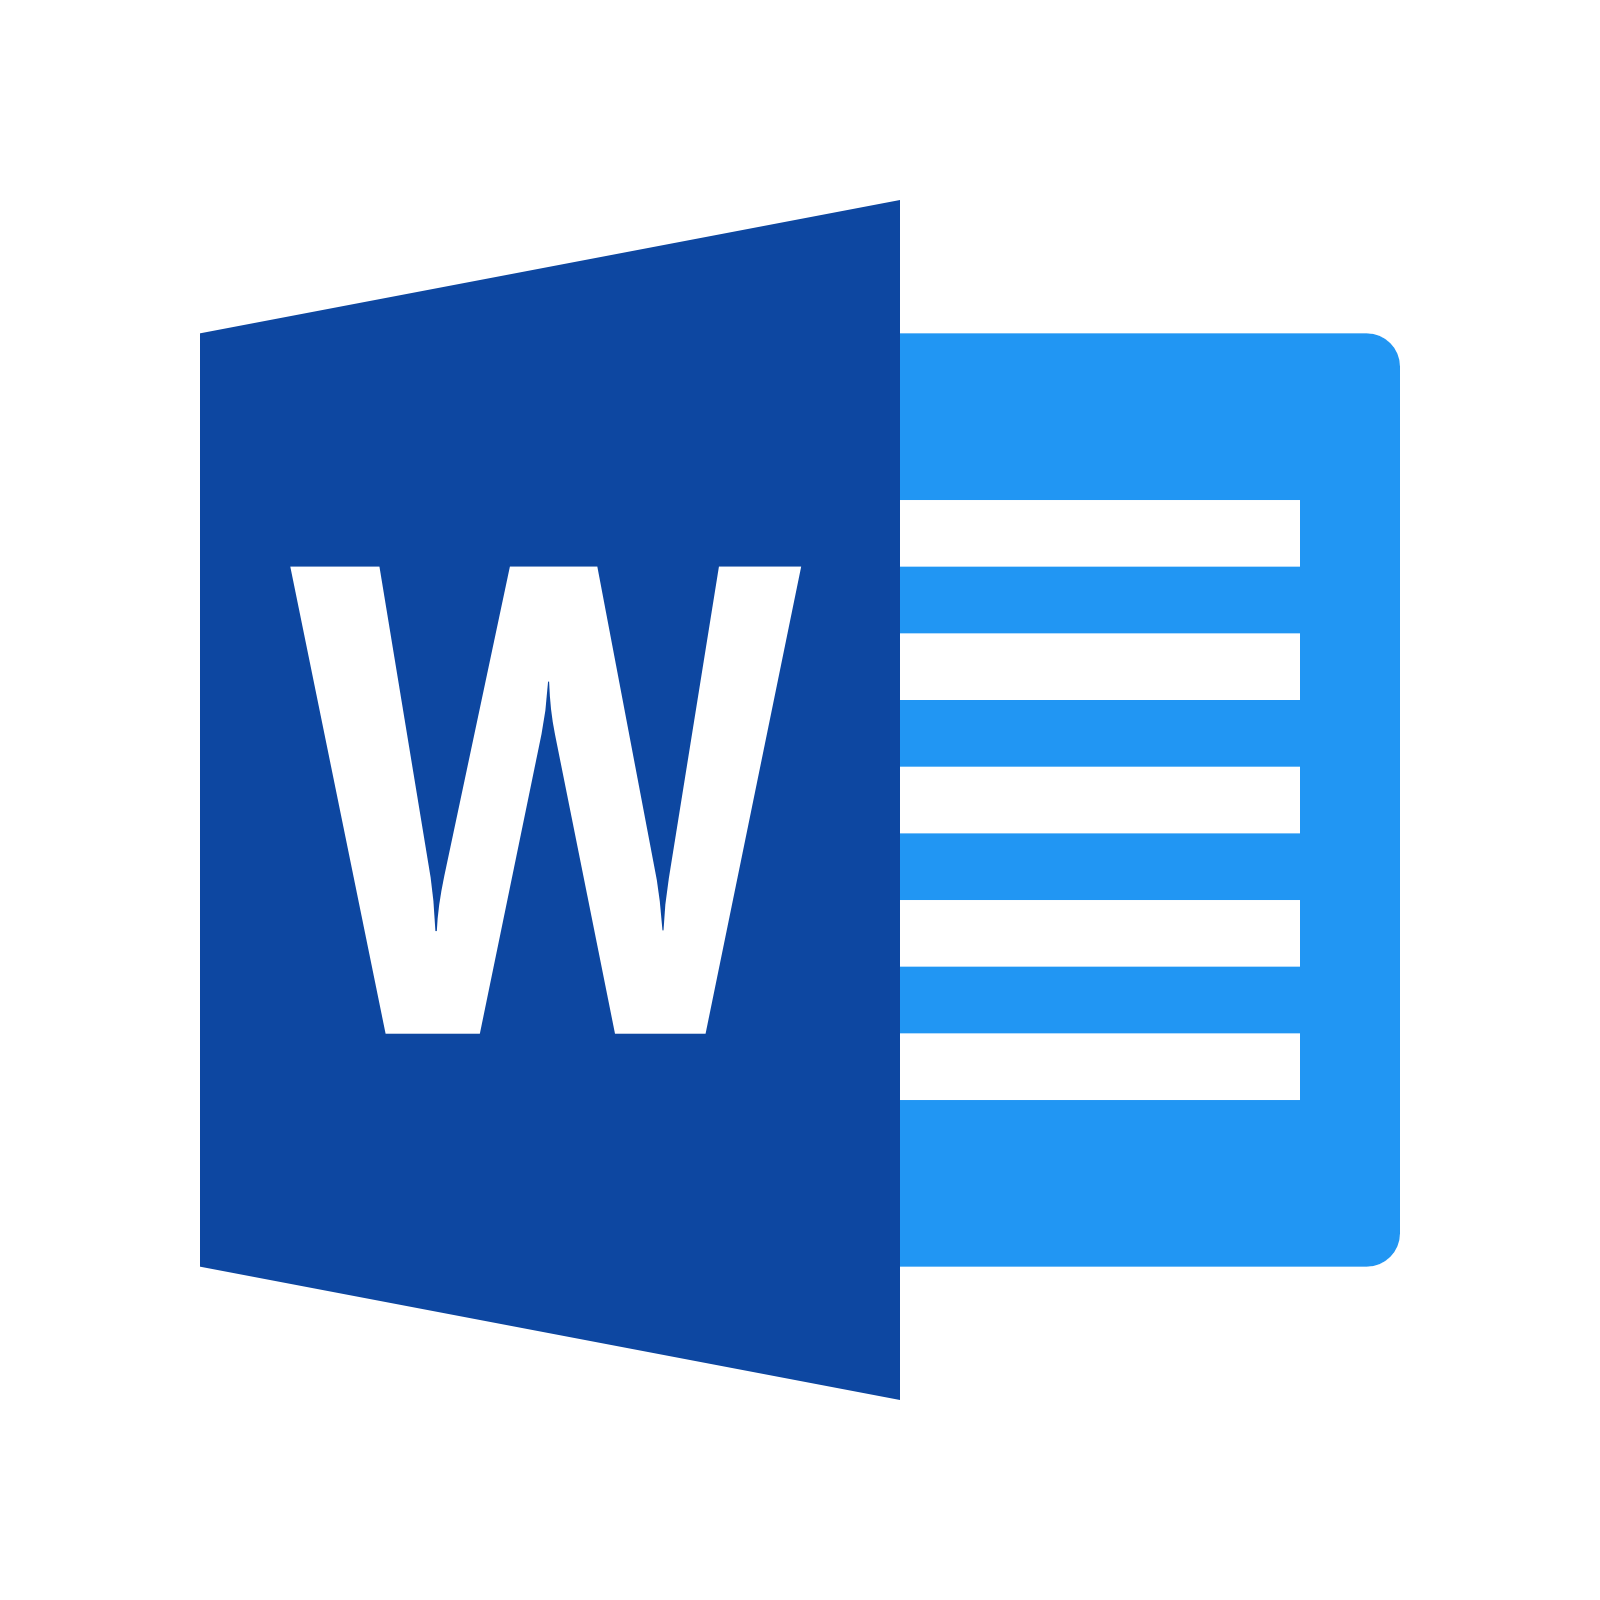 Microsoft Word Logo - How to Paste Text Like a Pro in Microsoft Word - Hungerford Tech- IT ...